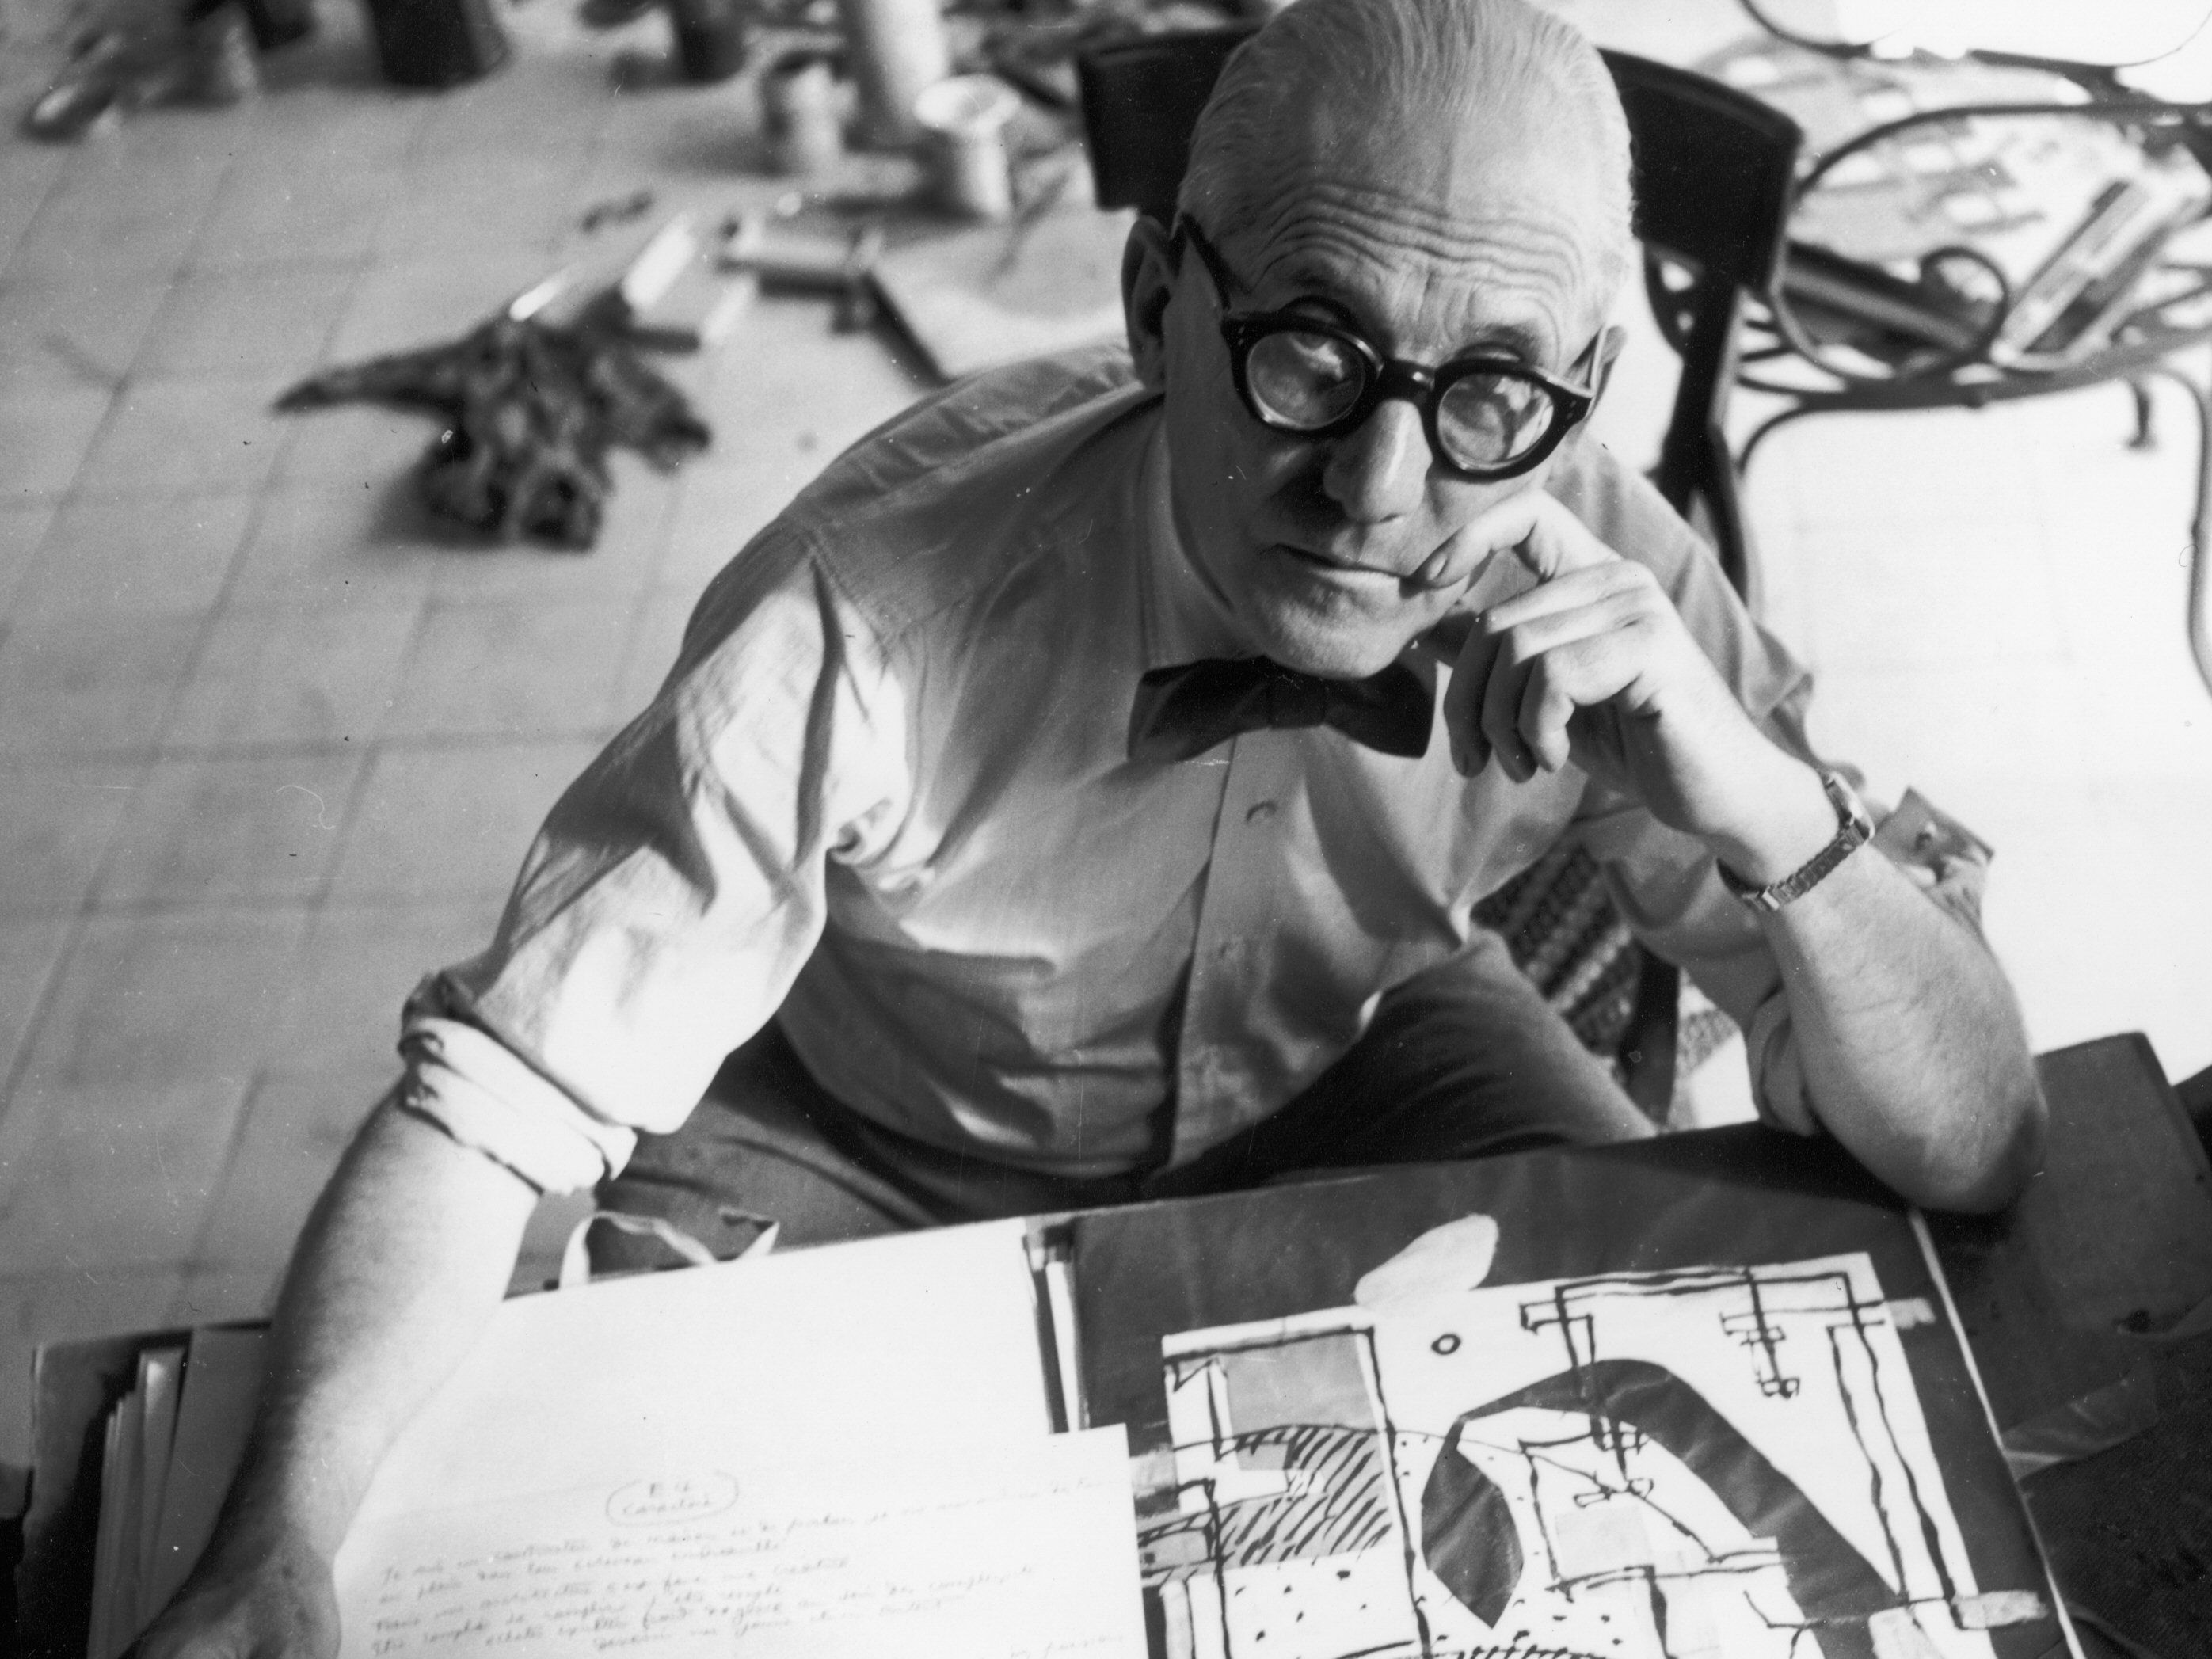 Le Corbusier Les 5 Points who is the most influential swiss architect?